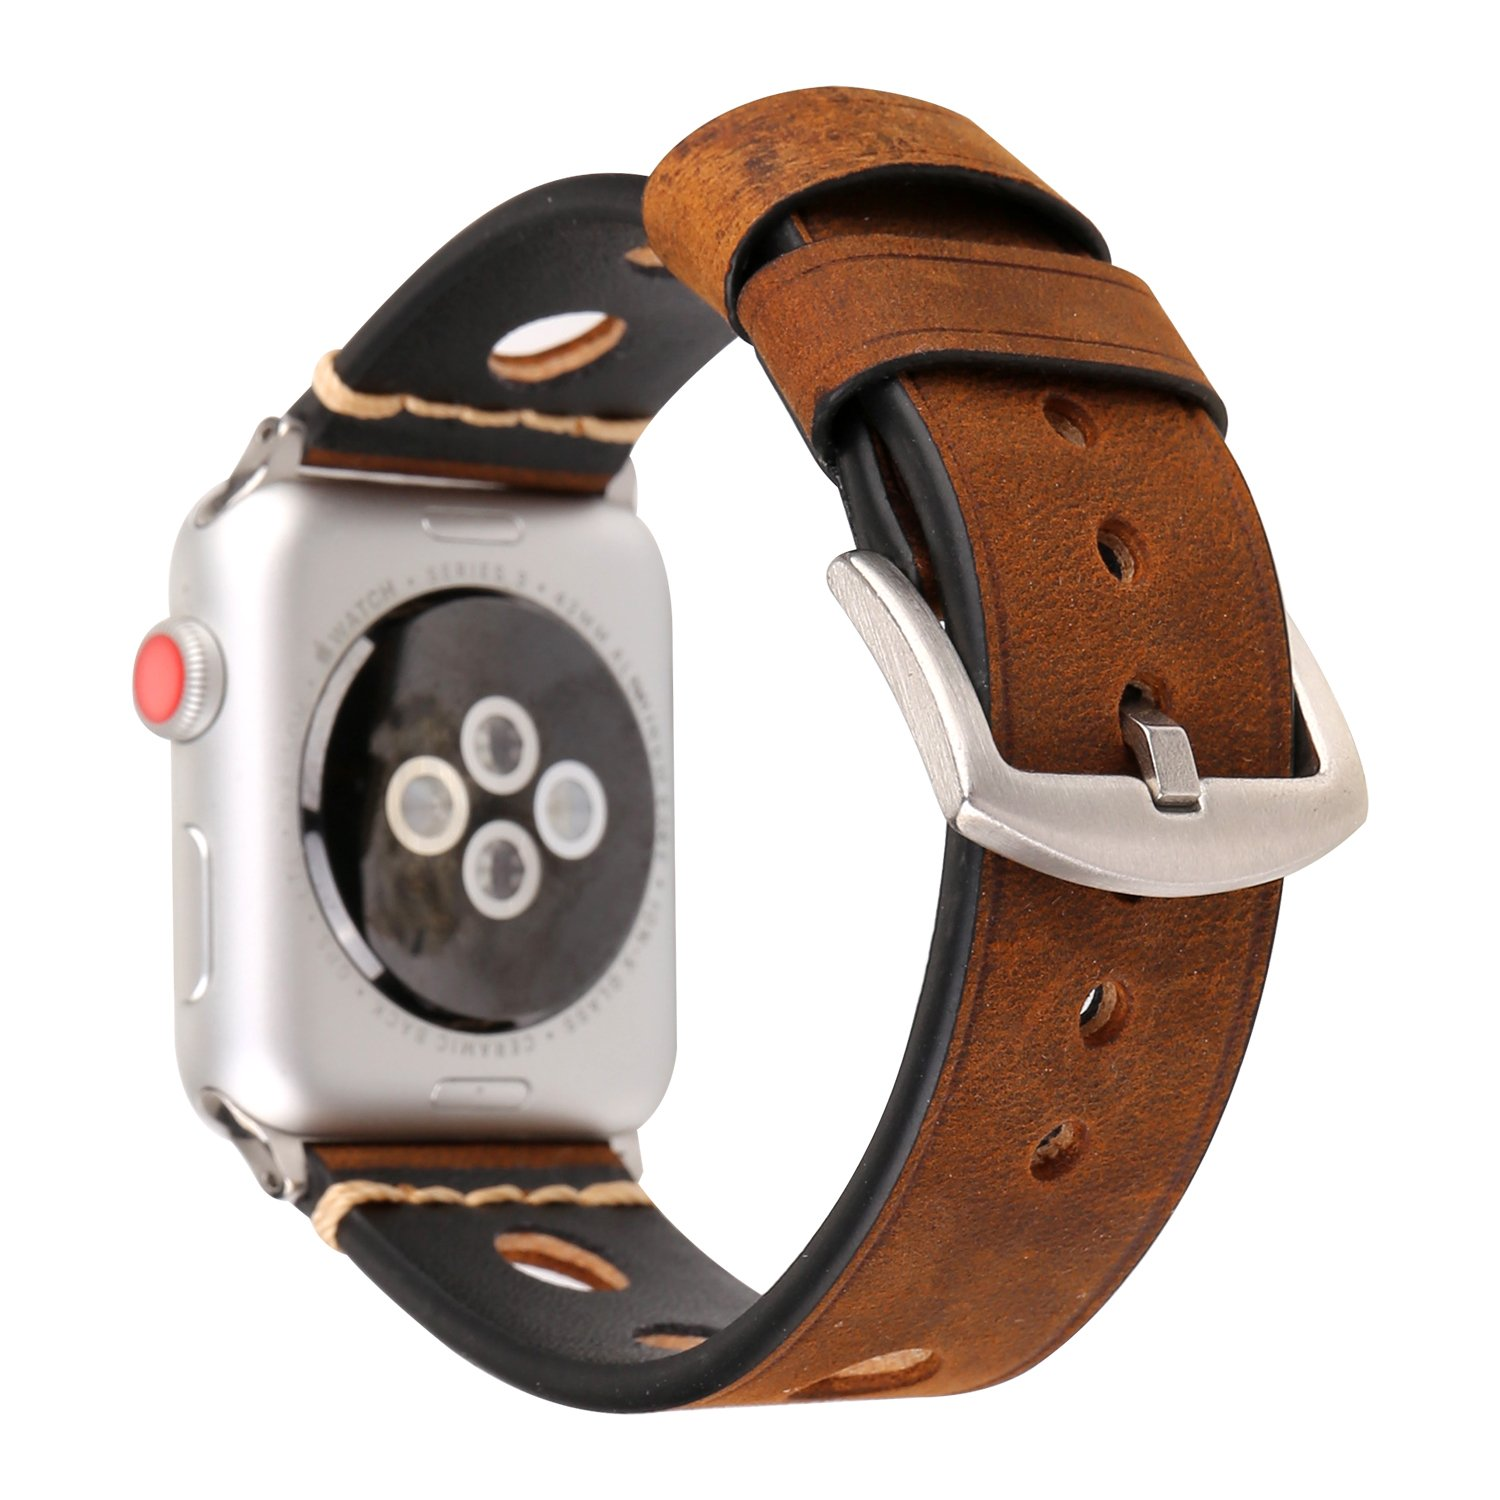 38mm Genuine Leather Strap d for Apple Watch Series 3 Series 2 Series 1 Sport and Edition, Brown